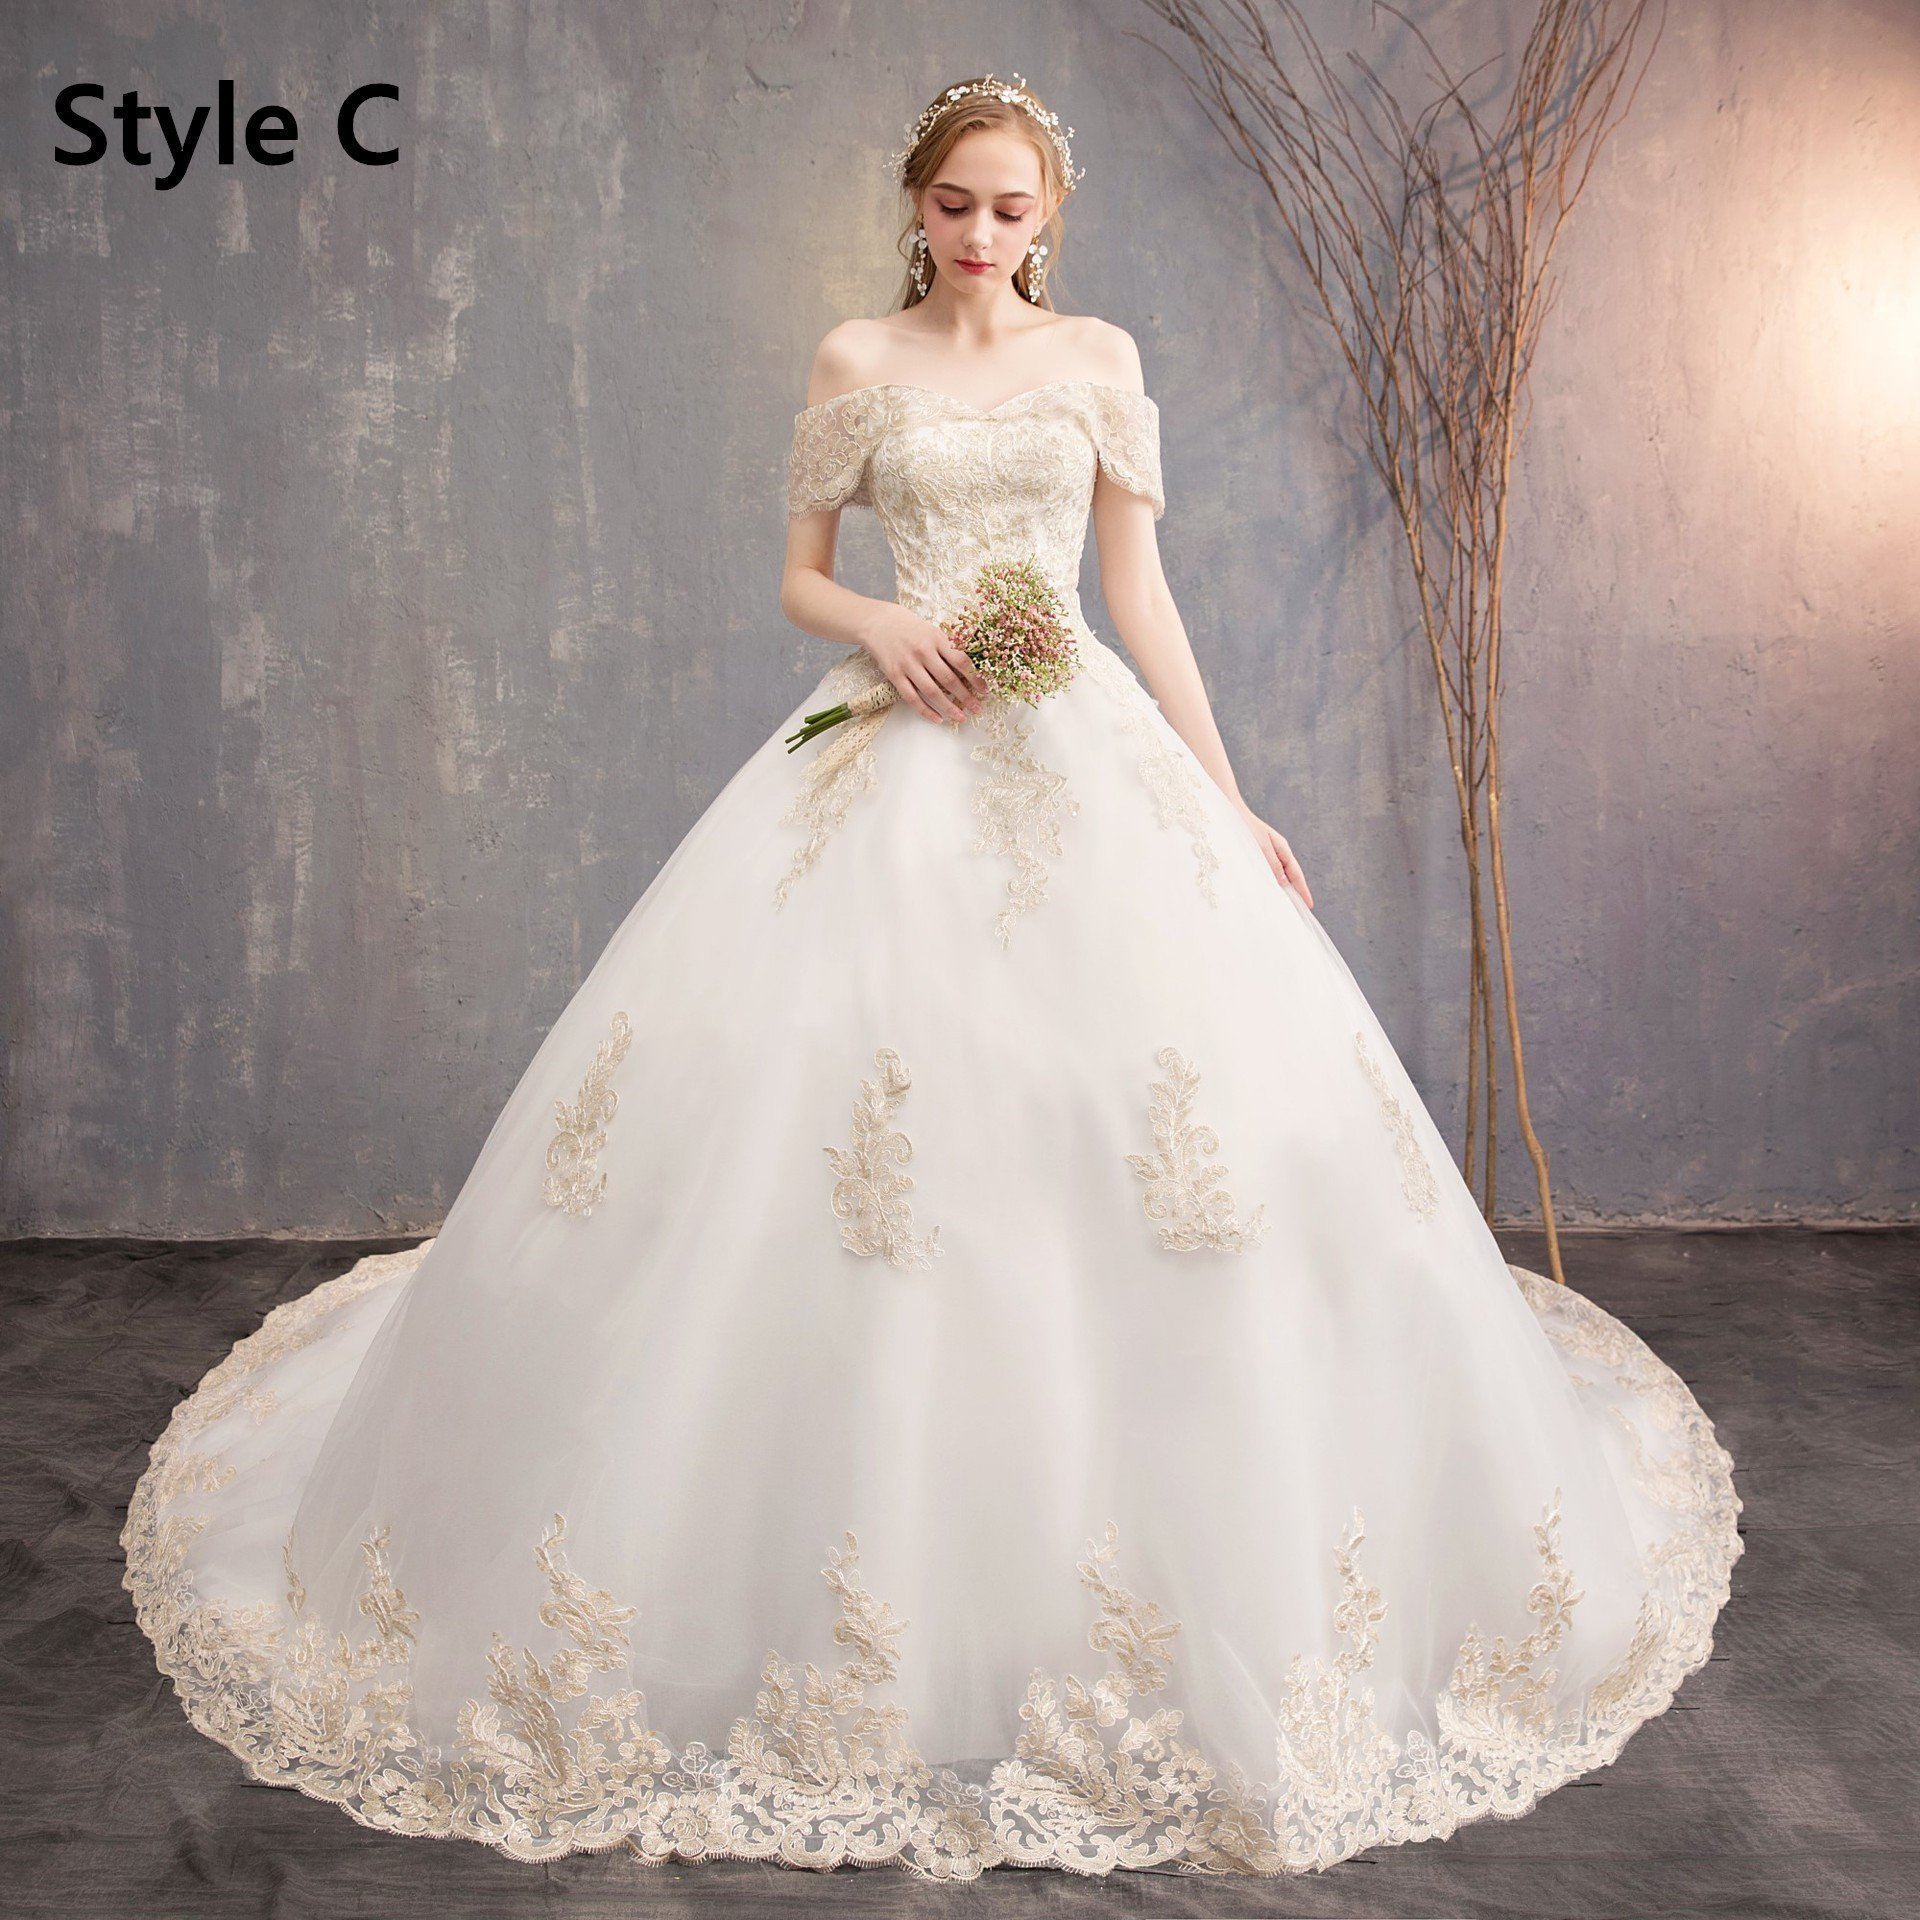 Best Wedding Dresses Lace Dresses Beach Wedding Party Attire Indo Western Dress For Girls Lemon Lace Dress Knee Length Wedding Dress Wedding Dinner Dress Strapless Lace Dress